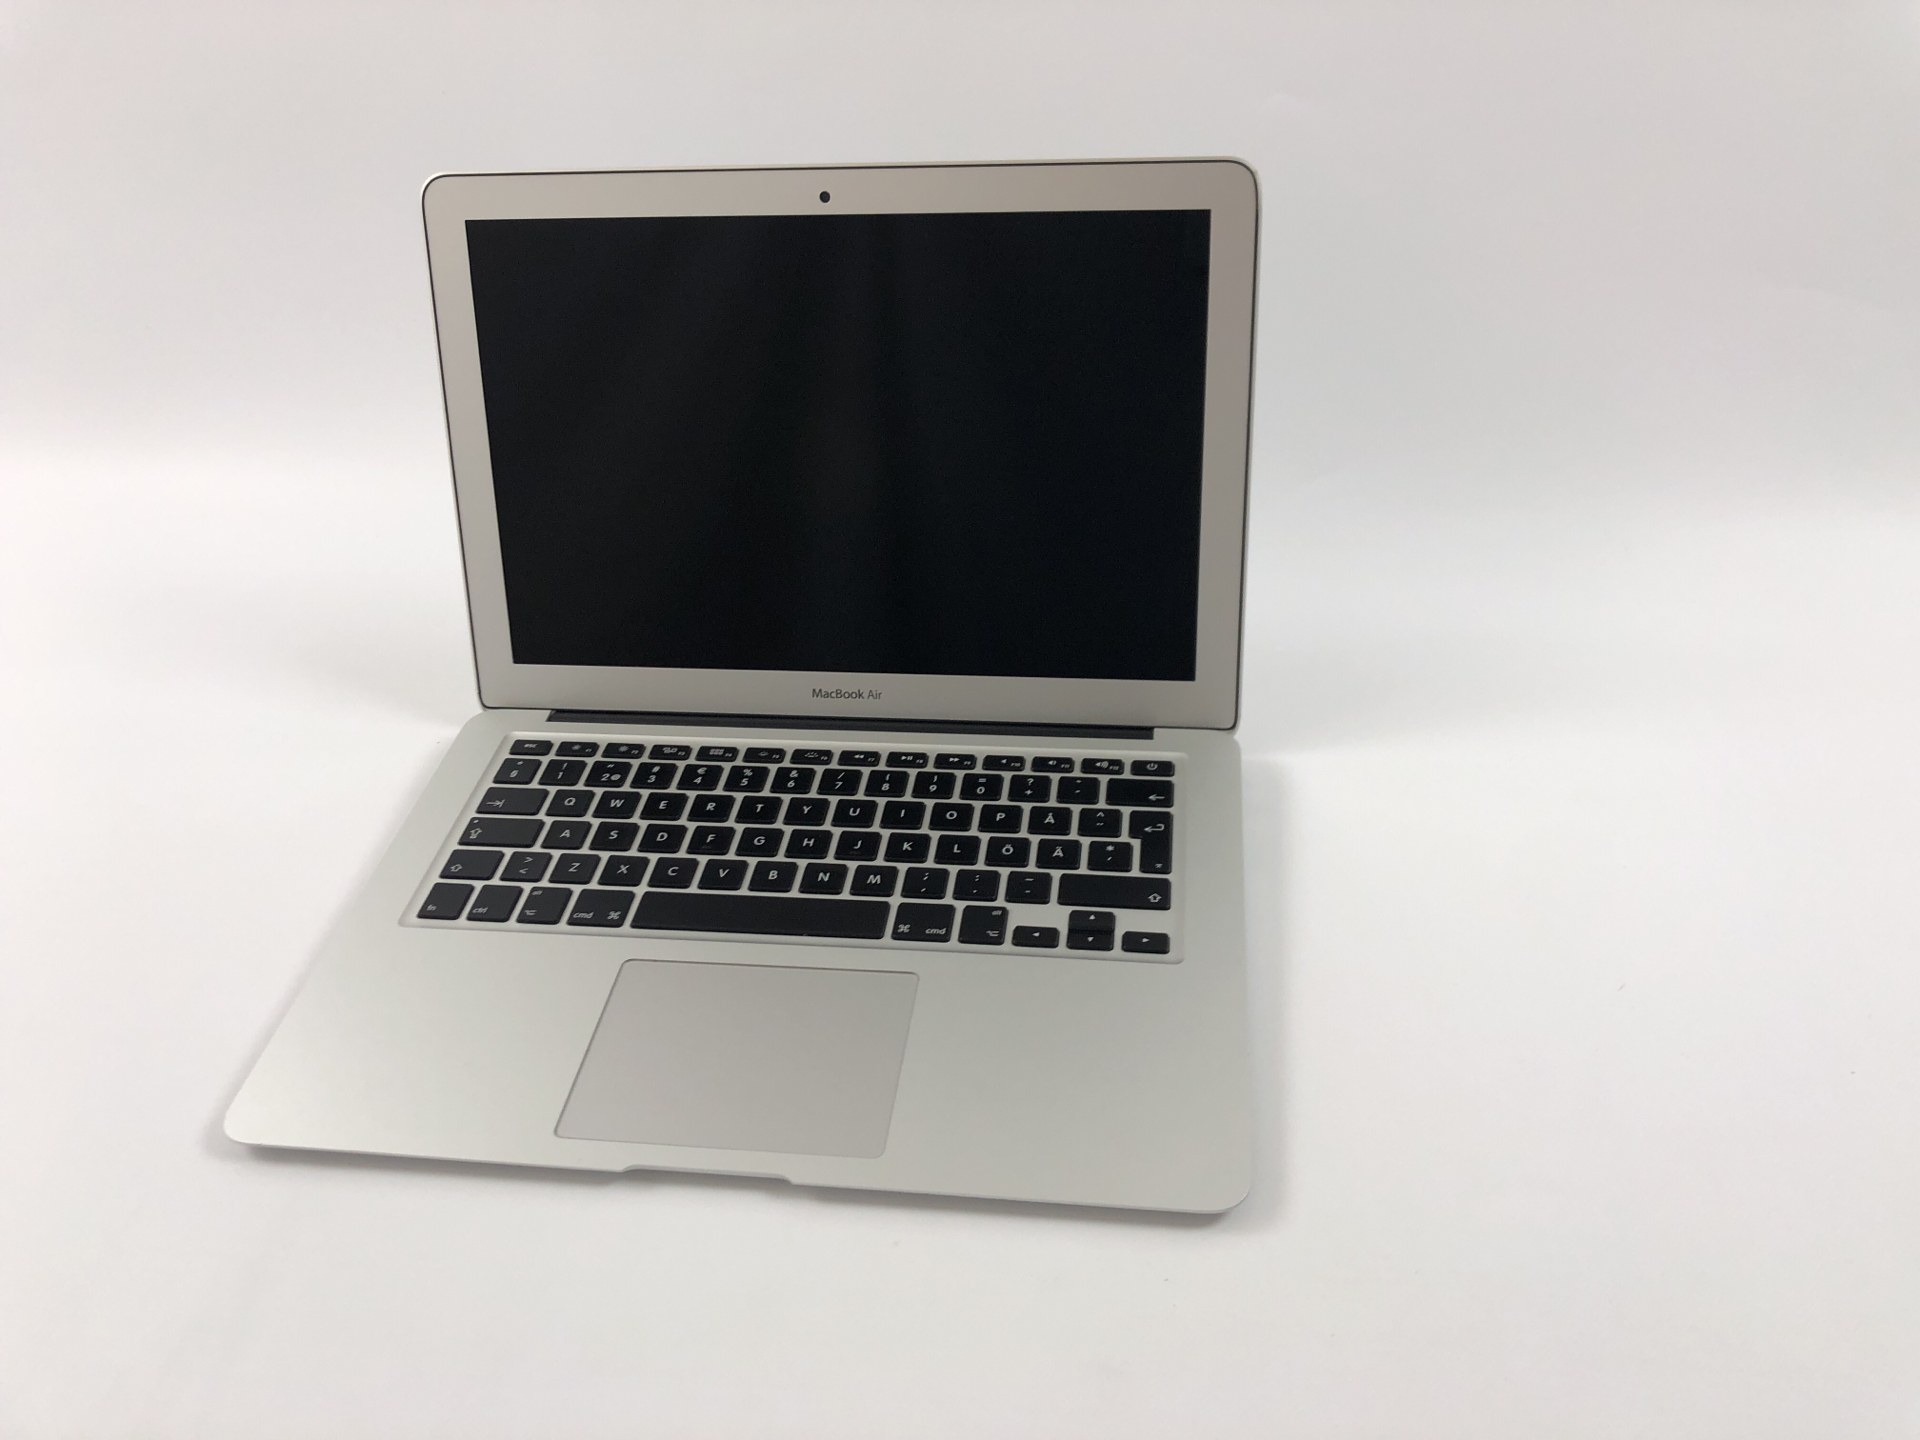 "MacBook Air 13"" Mid 2013 (Intel Core i7 1.7 GHz 8 GB RAM 256 GB SSD), Intel Core i7 1.7 GHz, 8 GB RAM, 256 GB SSD, bild 1"